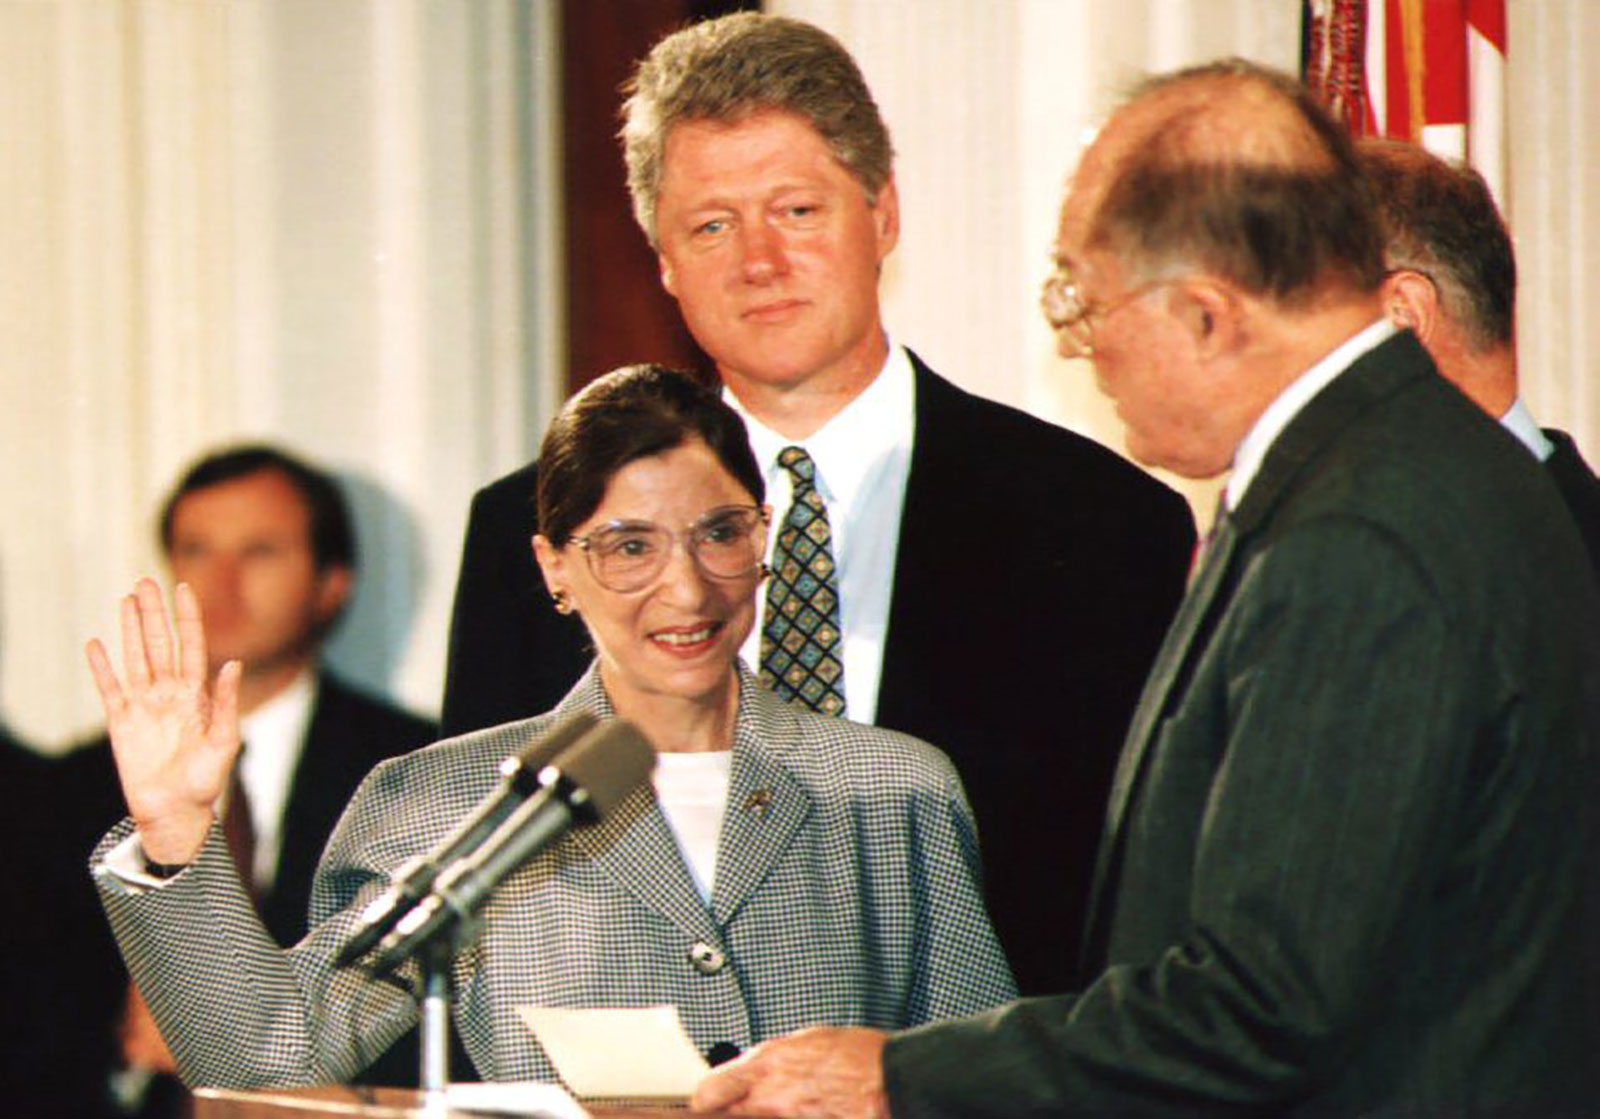 Chief Justice William Rehnquist, right, administers the oath of office to newly-appointed US Supreme Court Justice Ruth Bader Ginsburg on August 10, 1993.